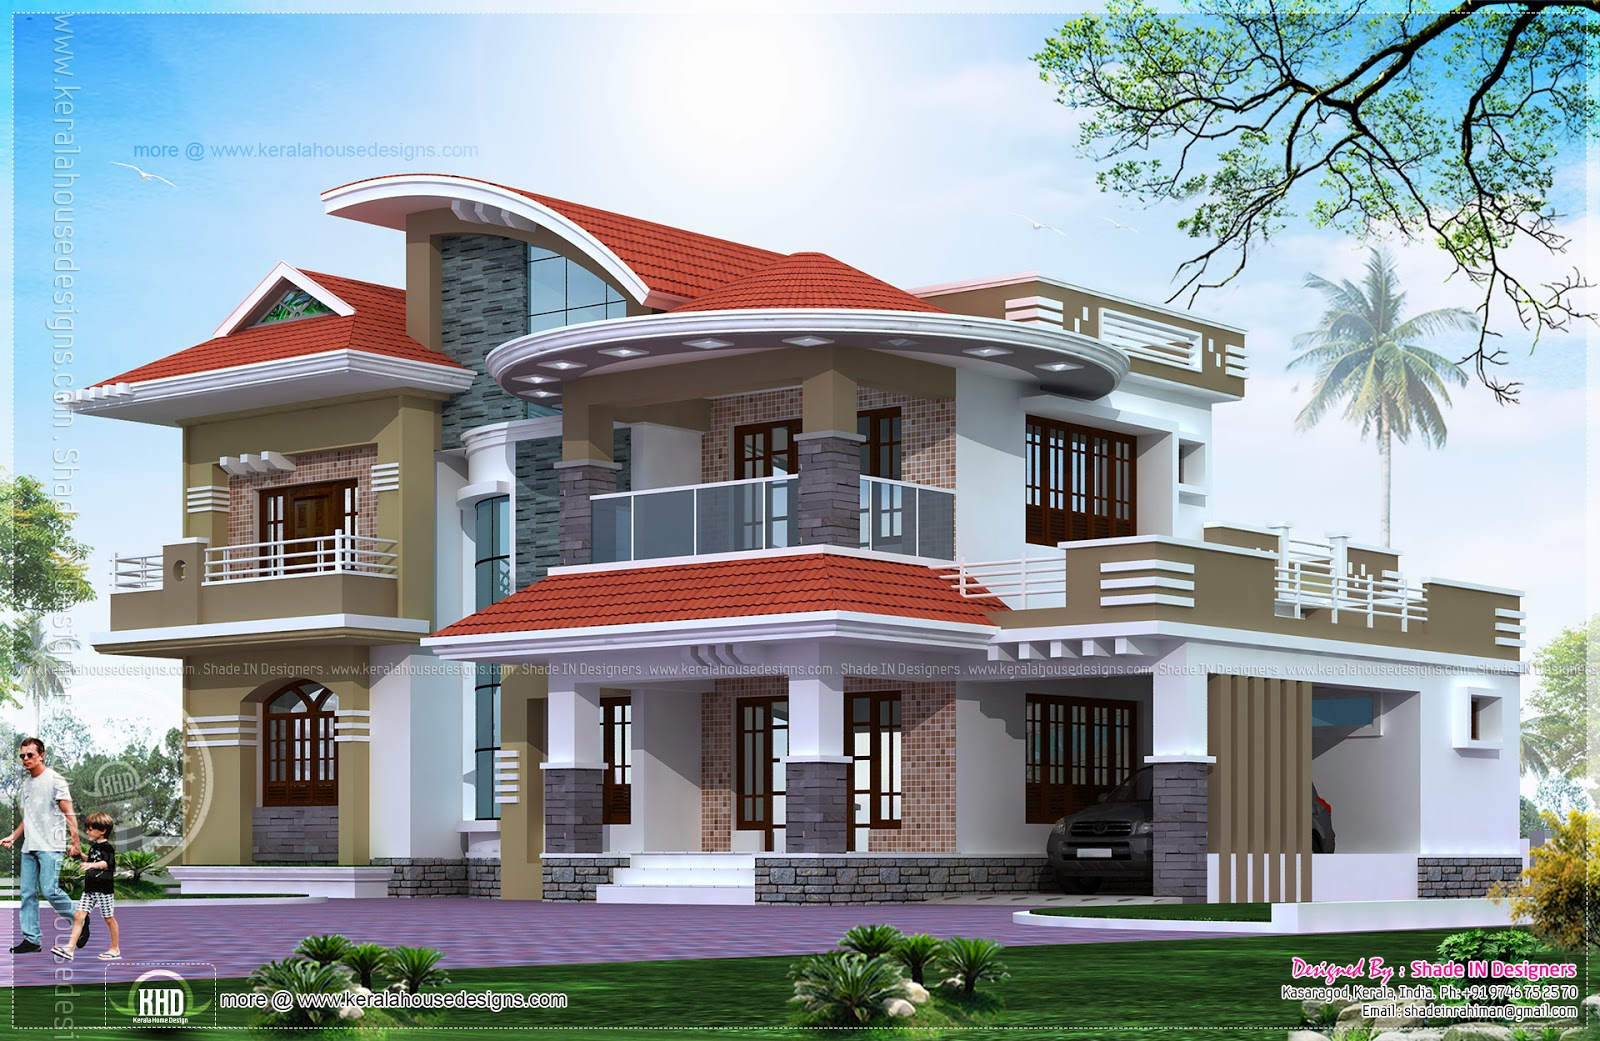 5 bedroom Luxury house in Kasaragod Kerala home design and floor plans